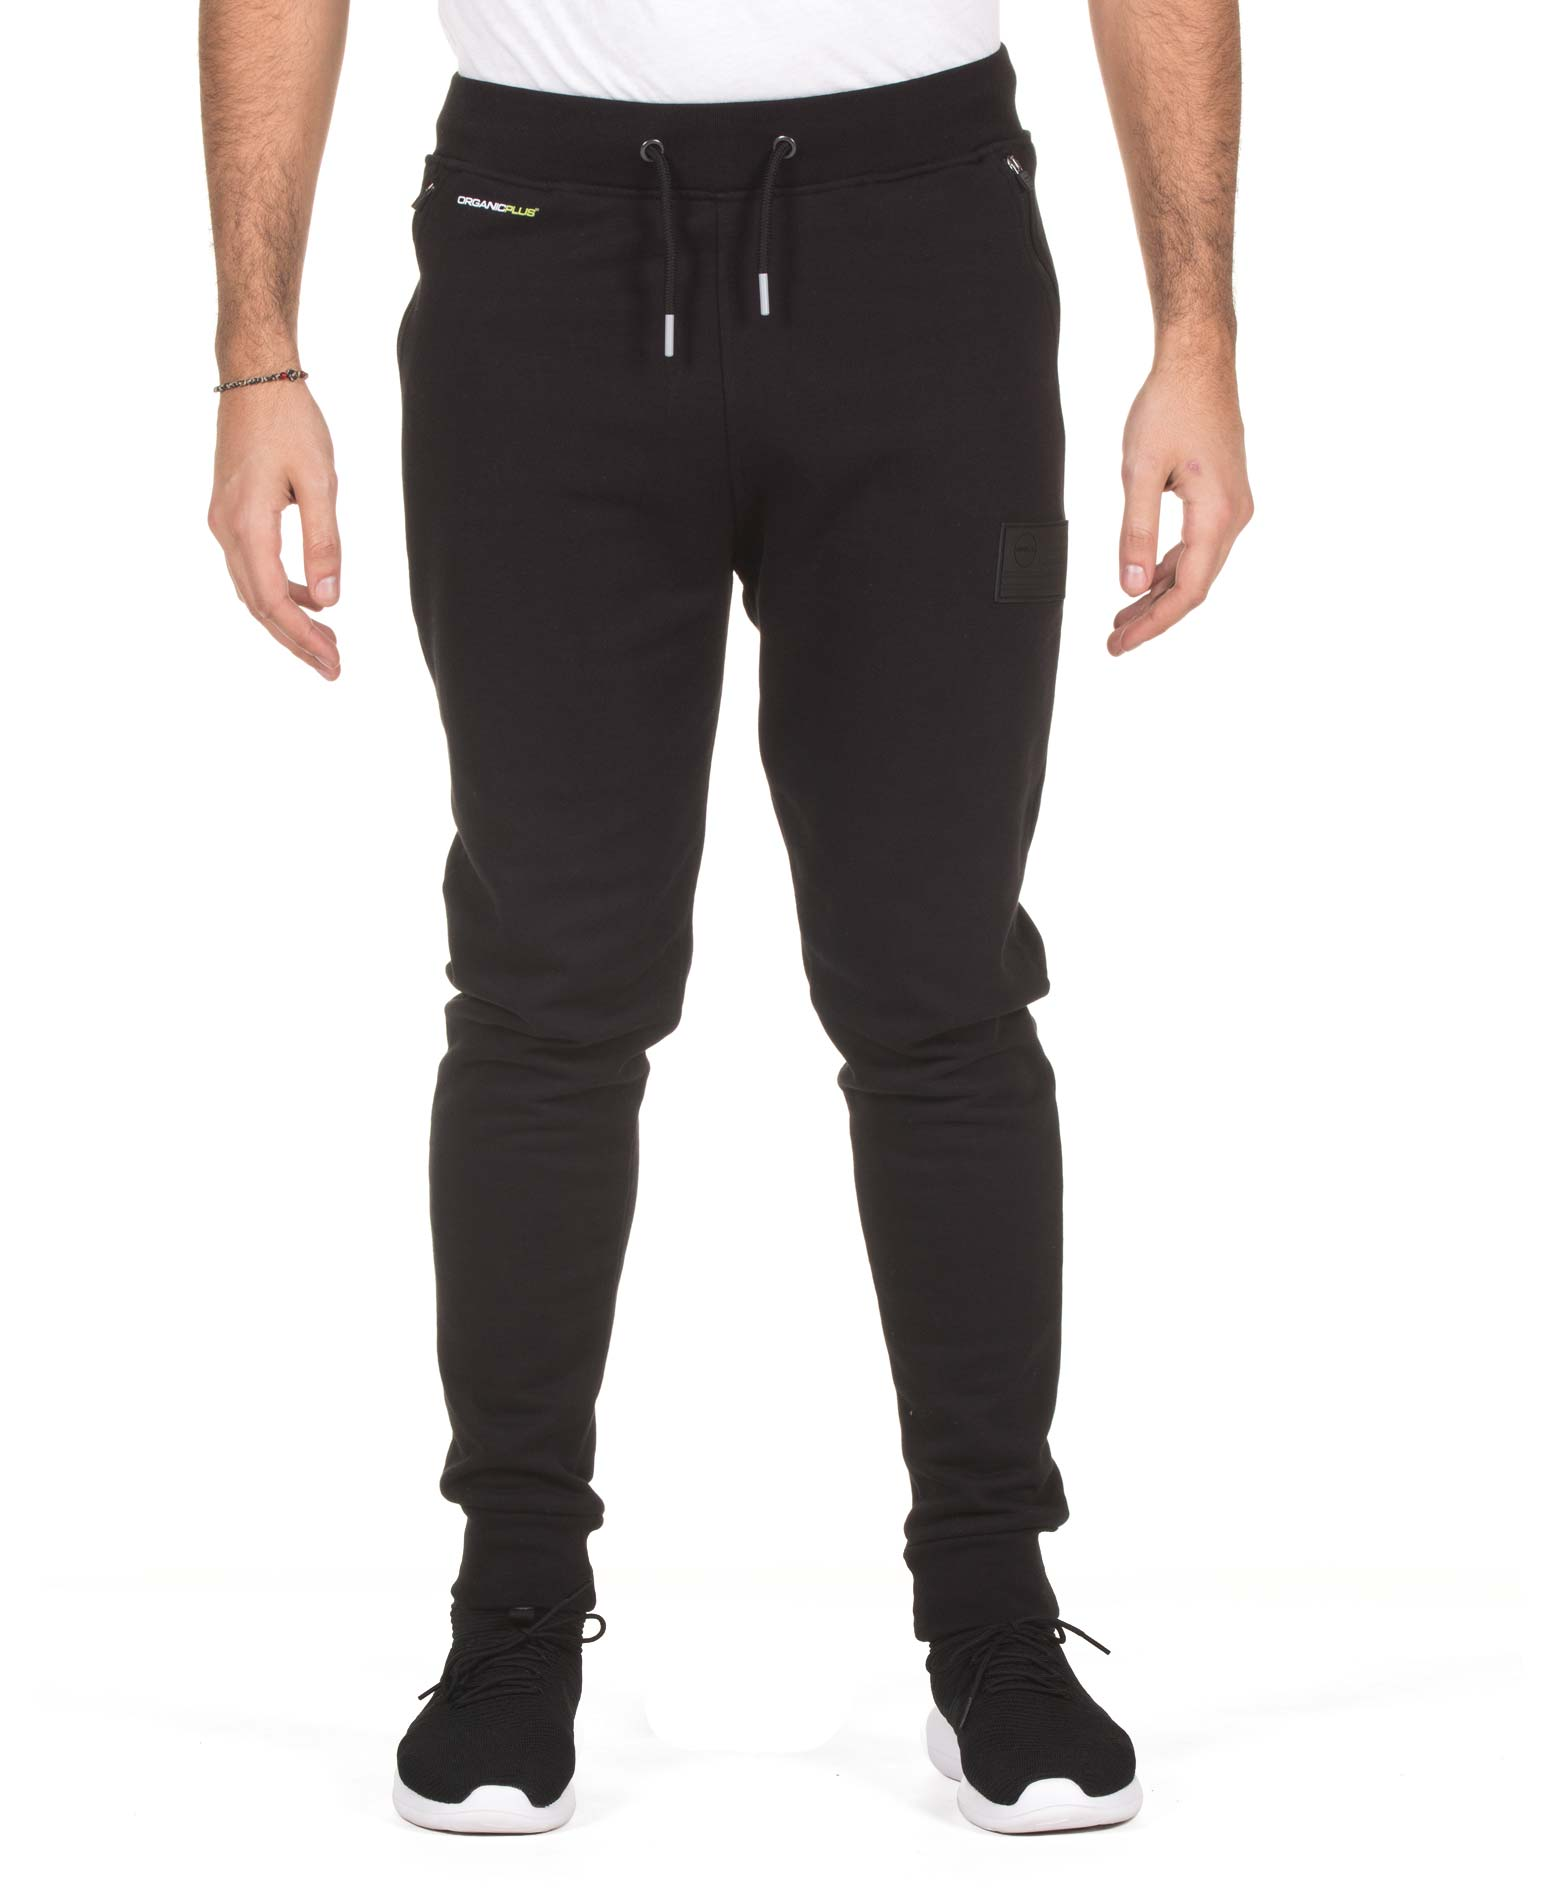 GSA SUPPERCOTTON PLUS SLIM SWEATPANTS 17-17023-01 JET BLACK Μαύρο